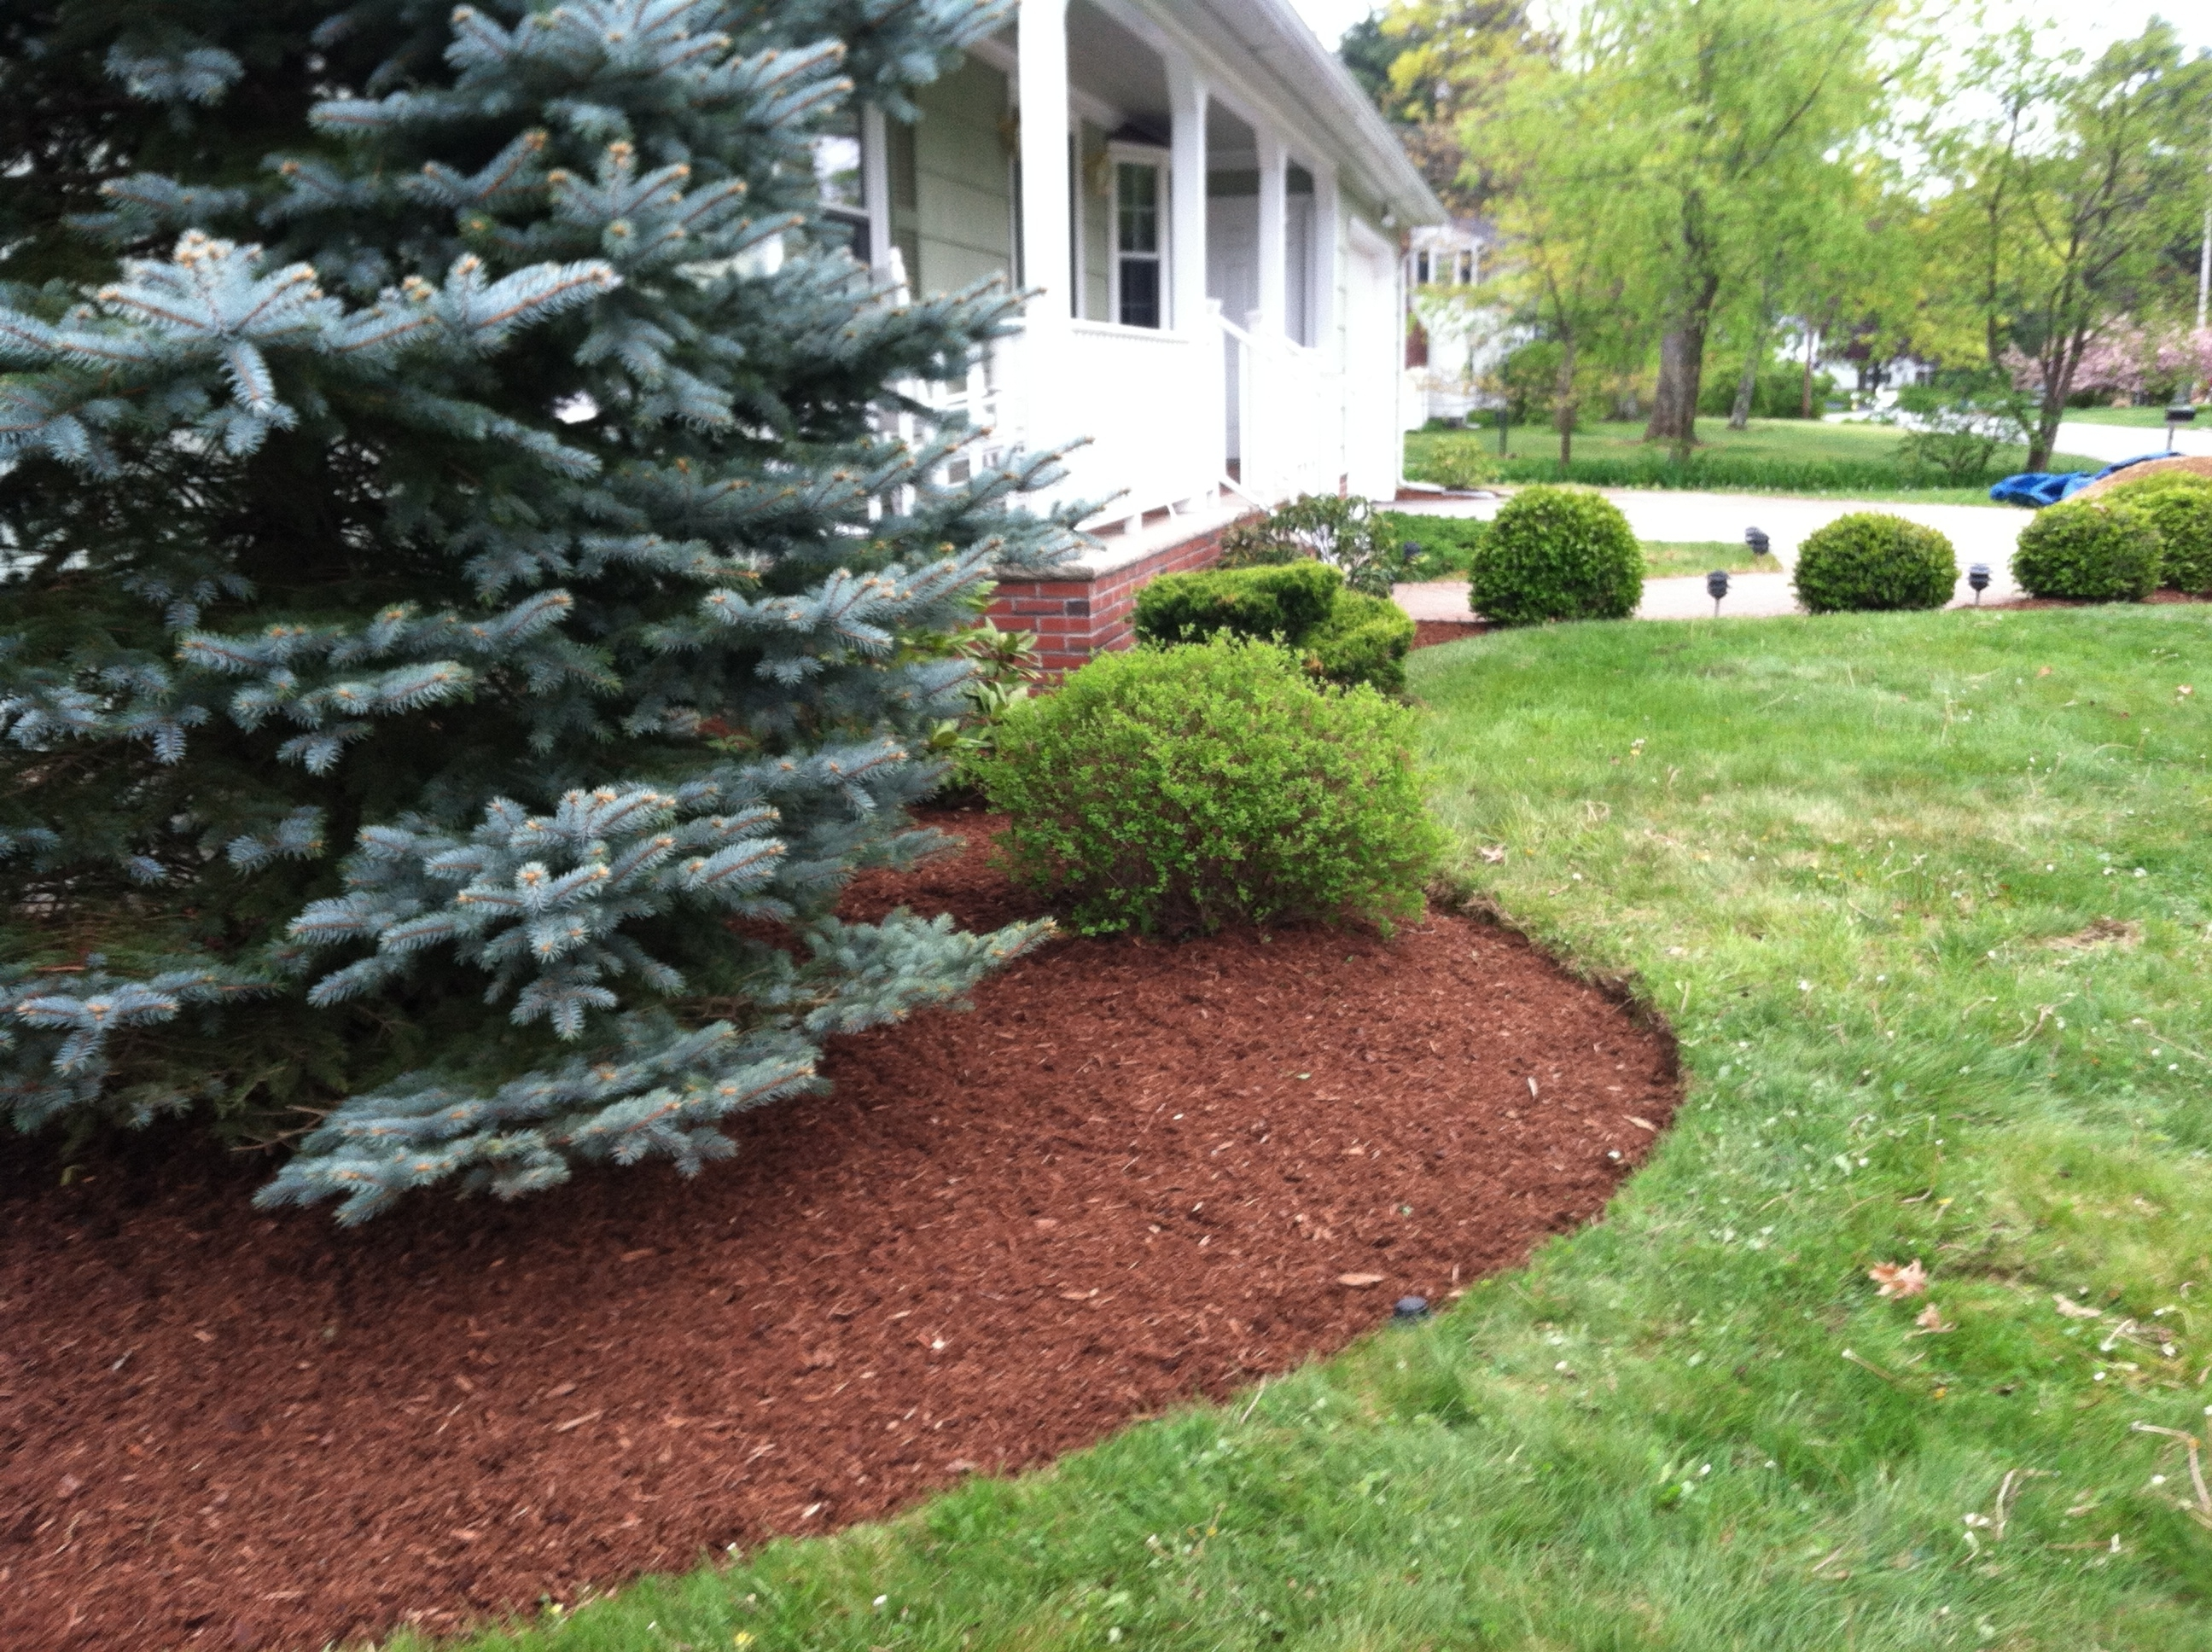 Bark Mulch For A Beautiful Yard In Nh Spring Landscaping Services Regarding Landscaping Bark Landscaping Bark For Season